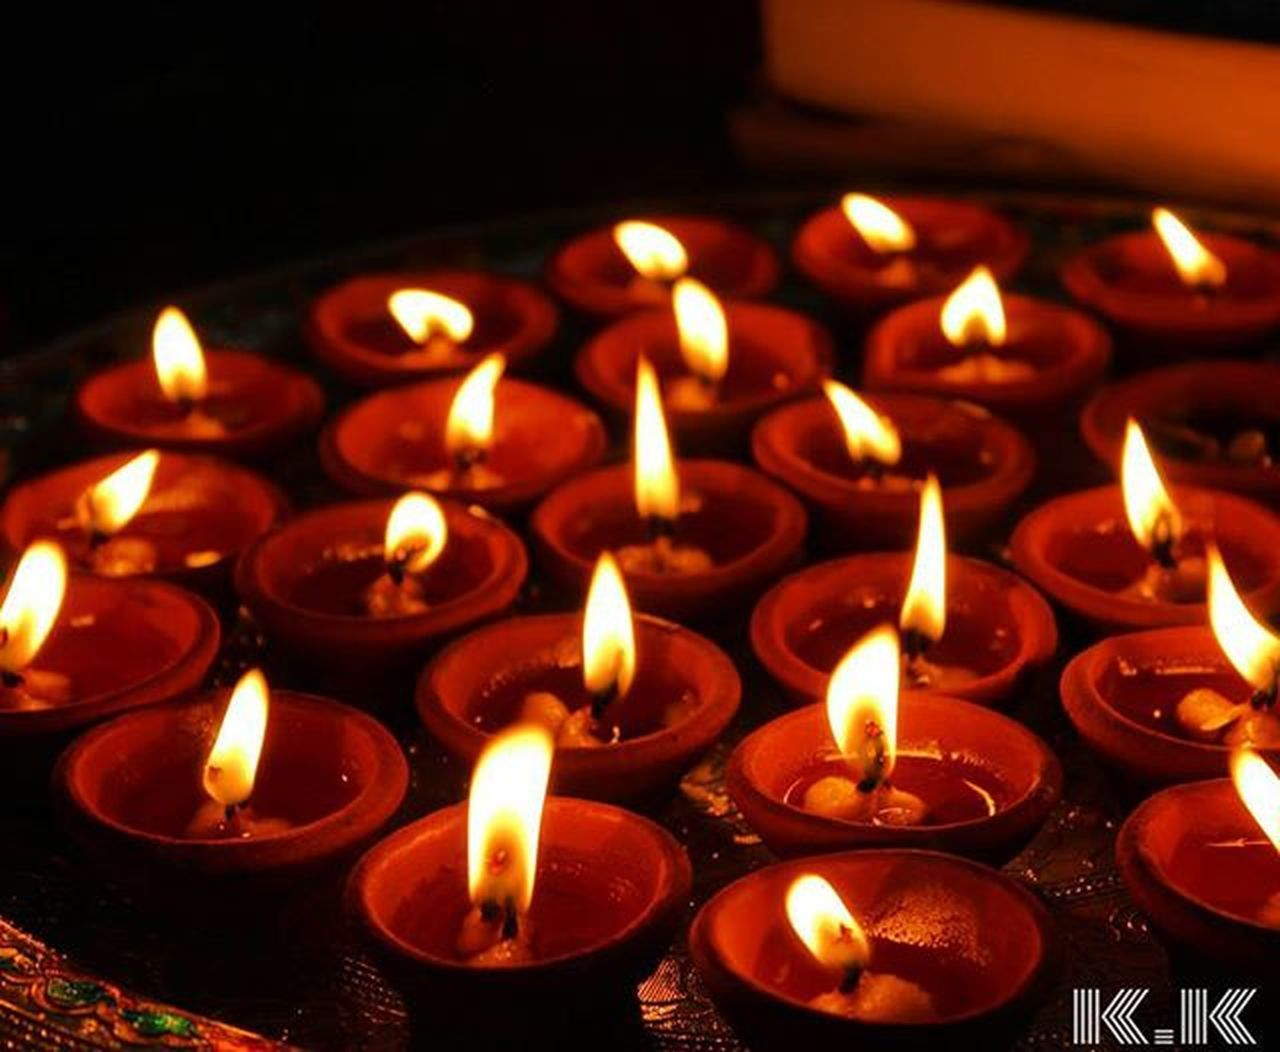 flame, candle, burning, heat - temperature, glowing, indoors, illuminated, no people, religion, large group of objects, close-up, spirituality, place of worship, diya - oil lamp, black background